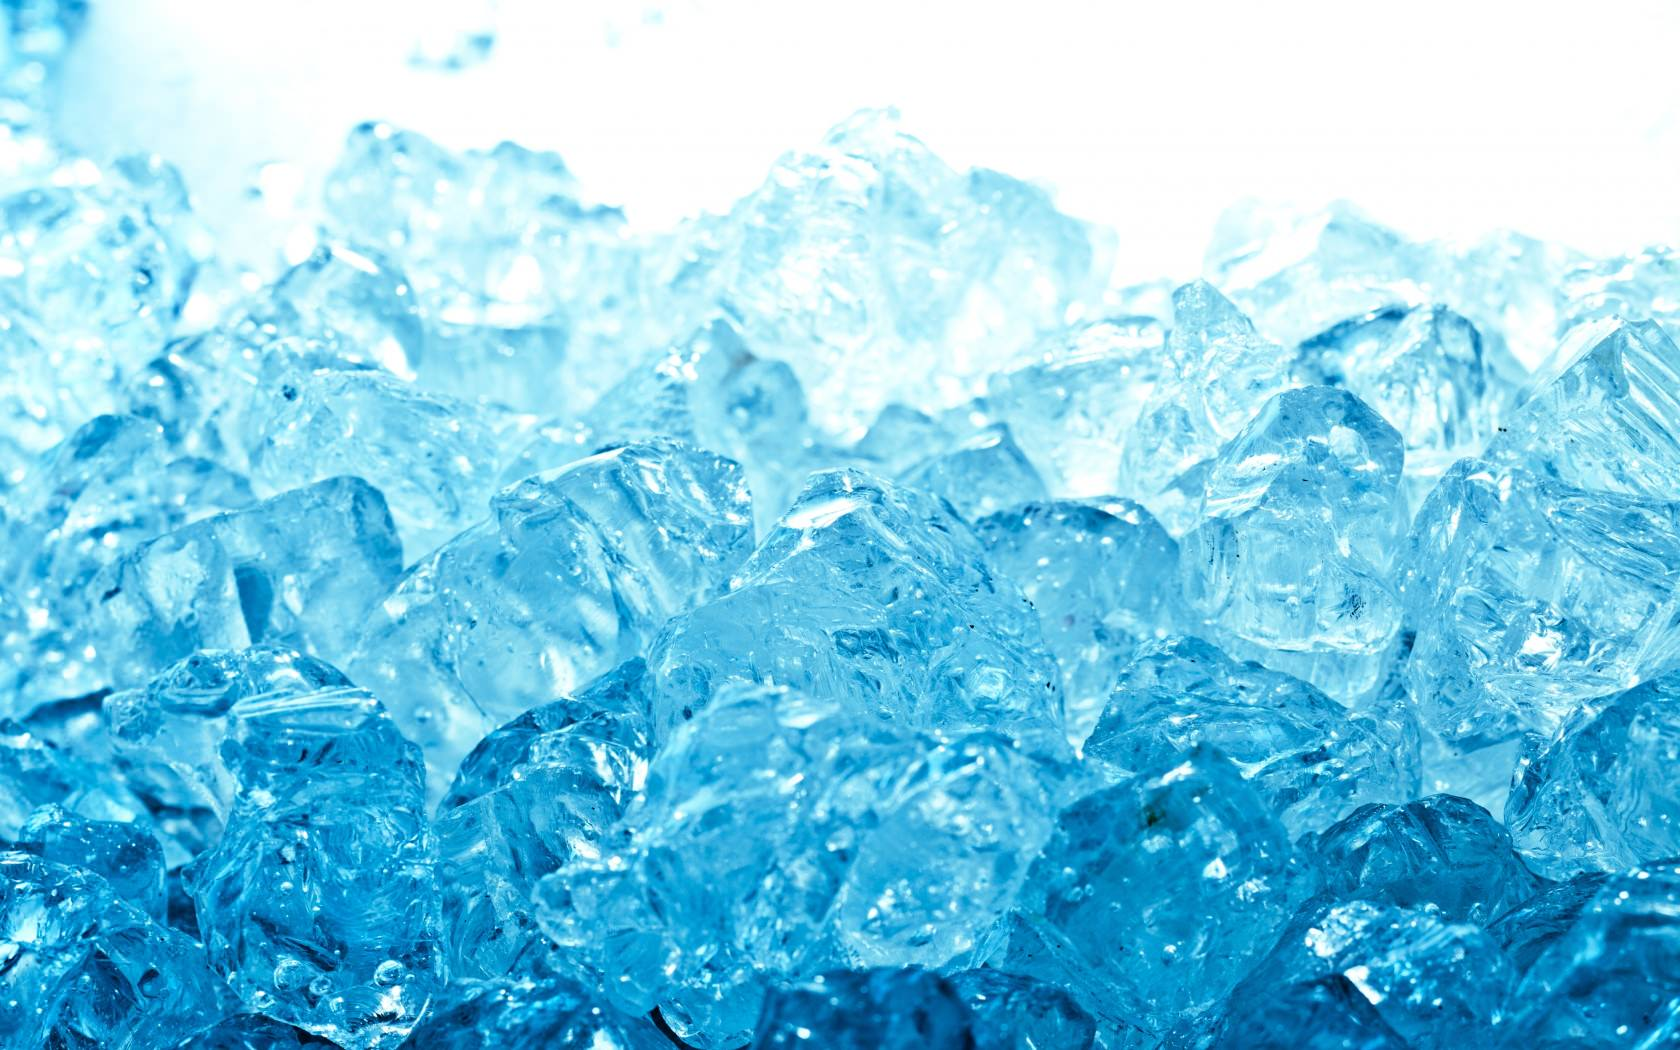 35 Ice Textures Photoshop Textures FreeCreatives 1680x1050